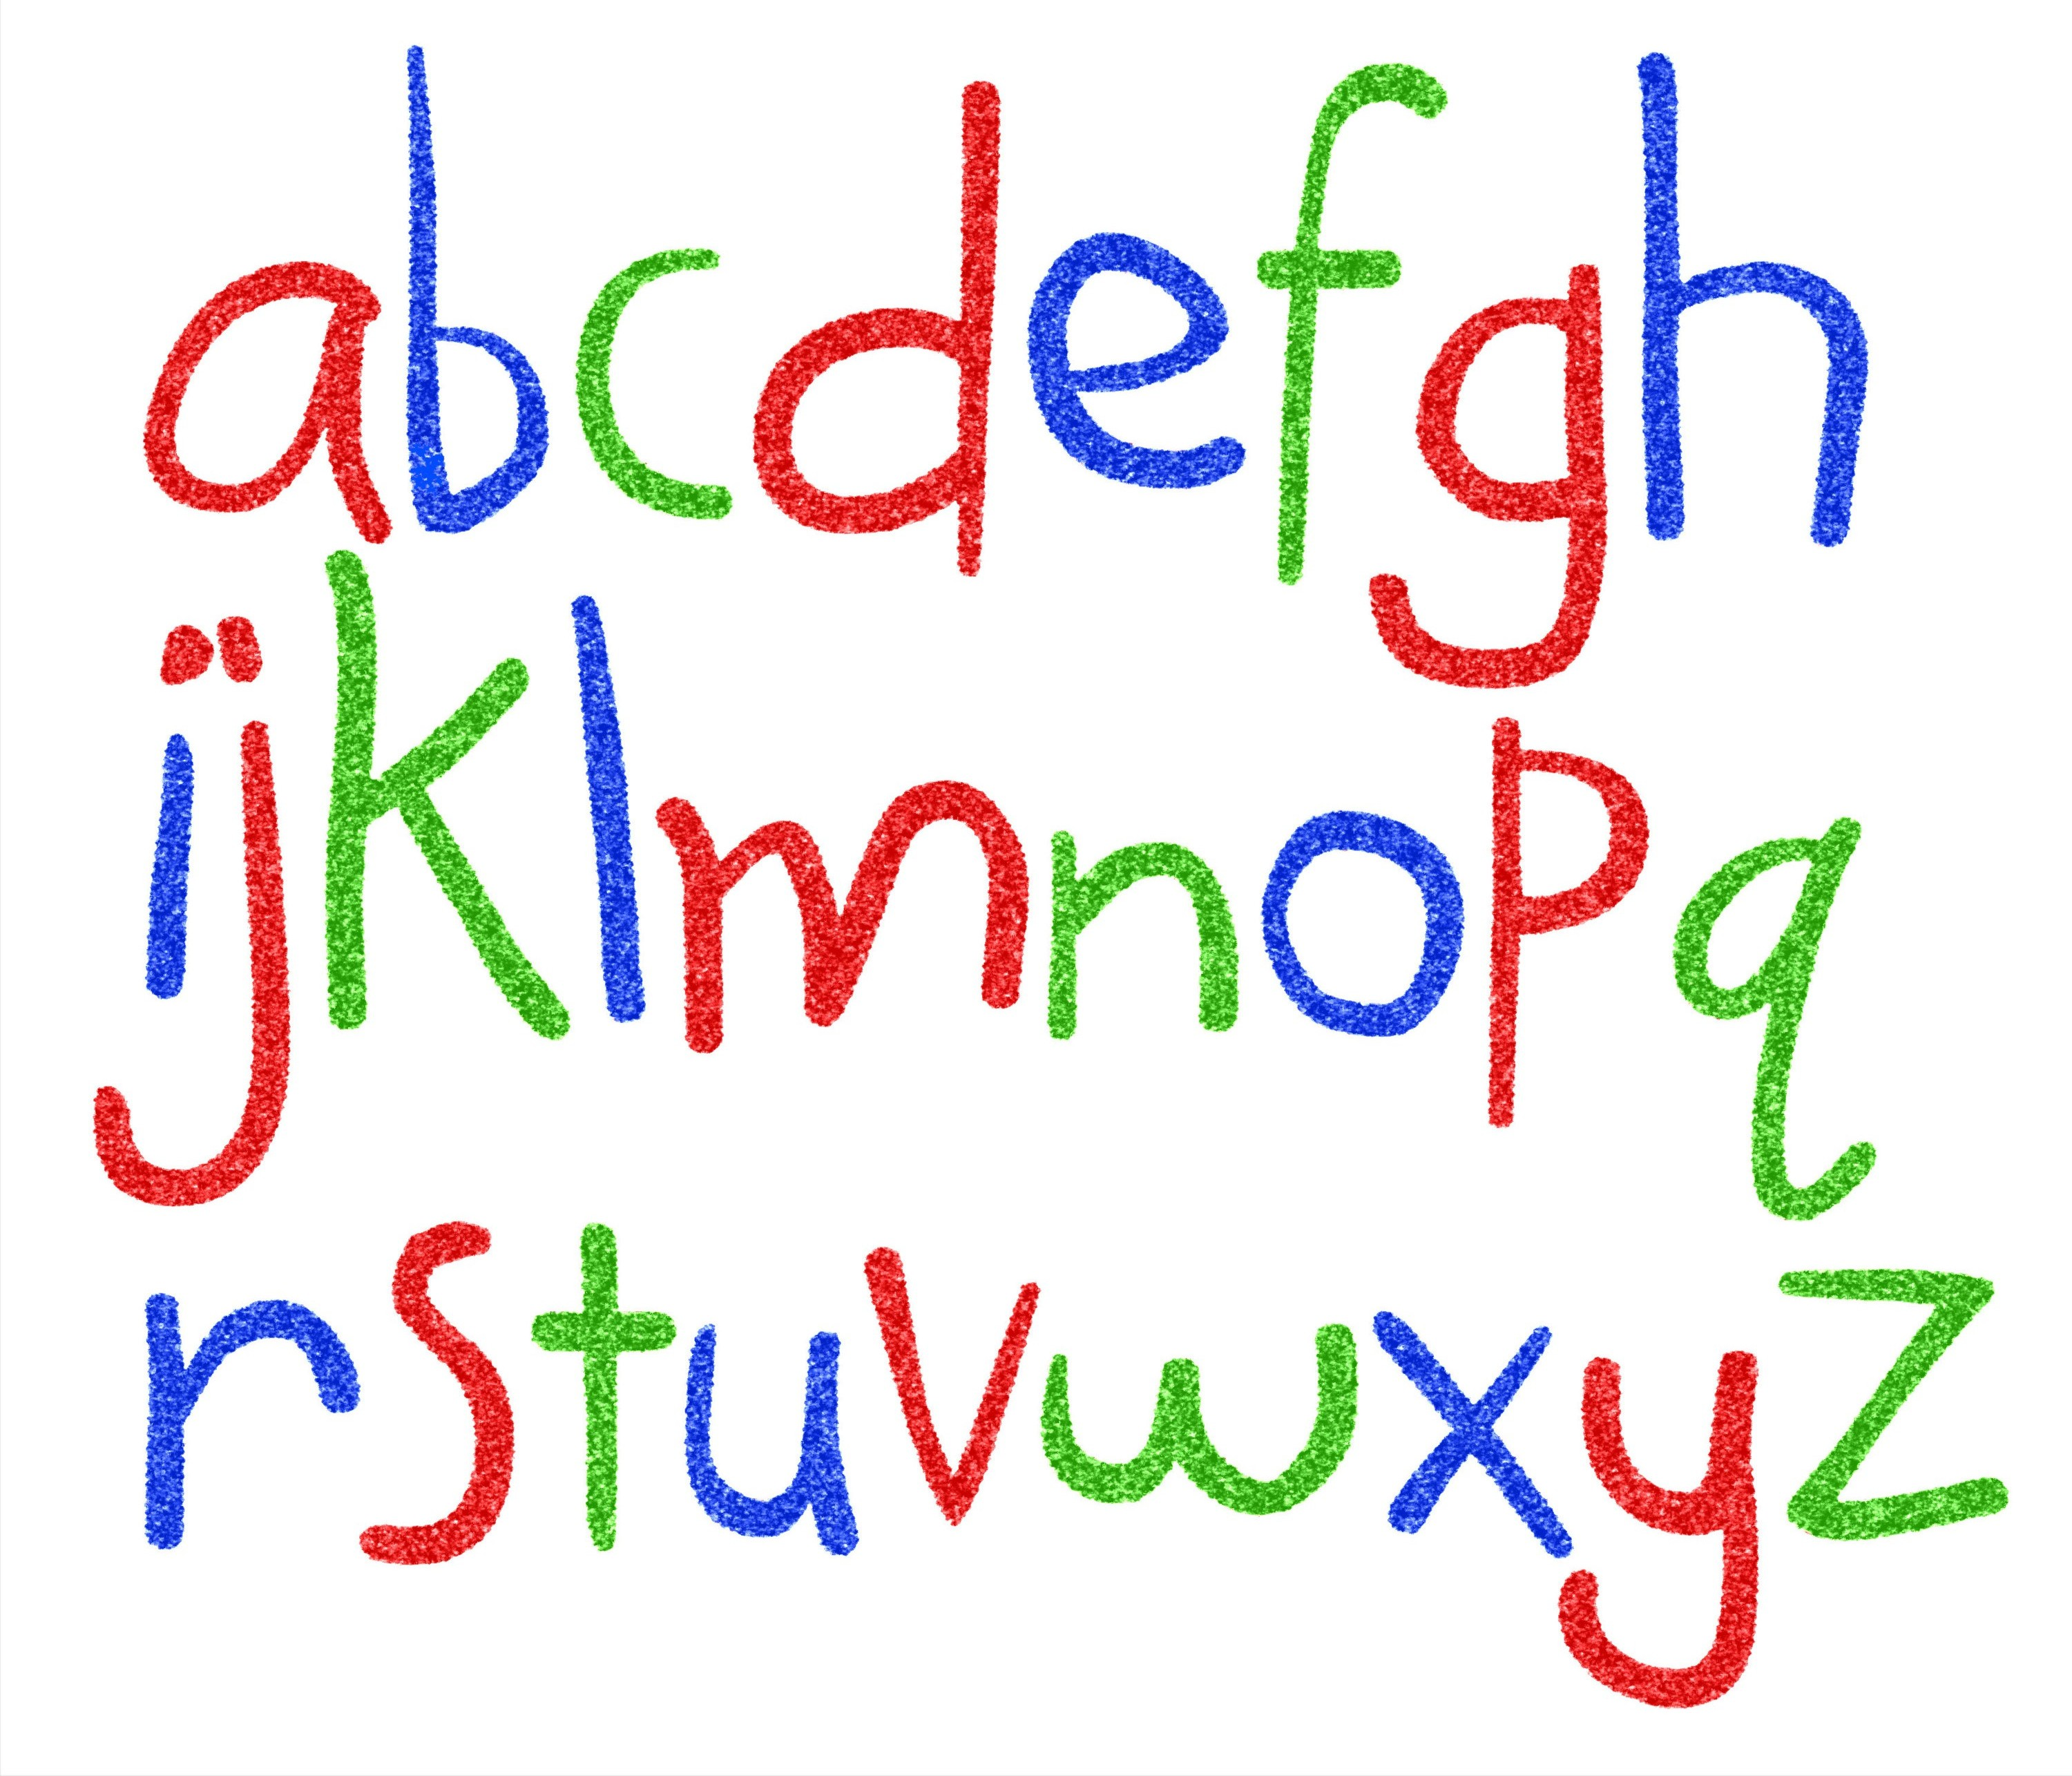 Free Funny And Cool Alphabet Clipart For Teaching Alphabets To Early